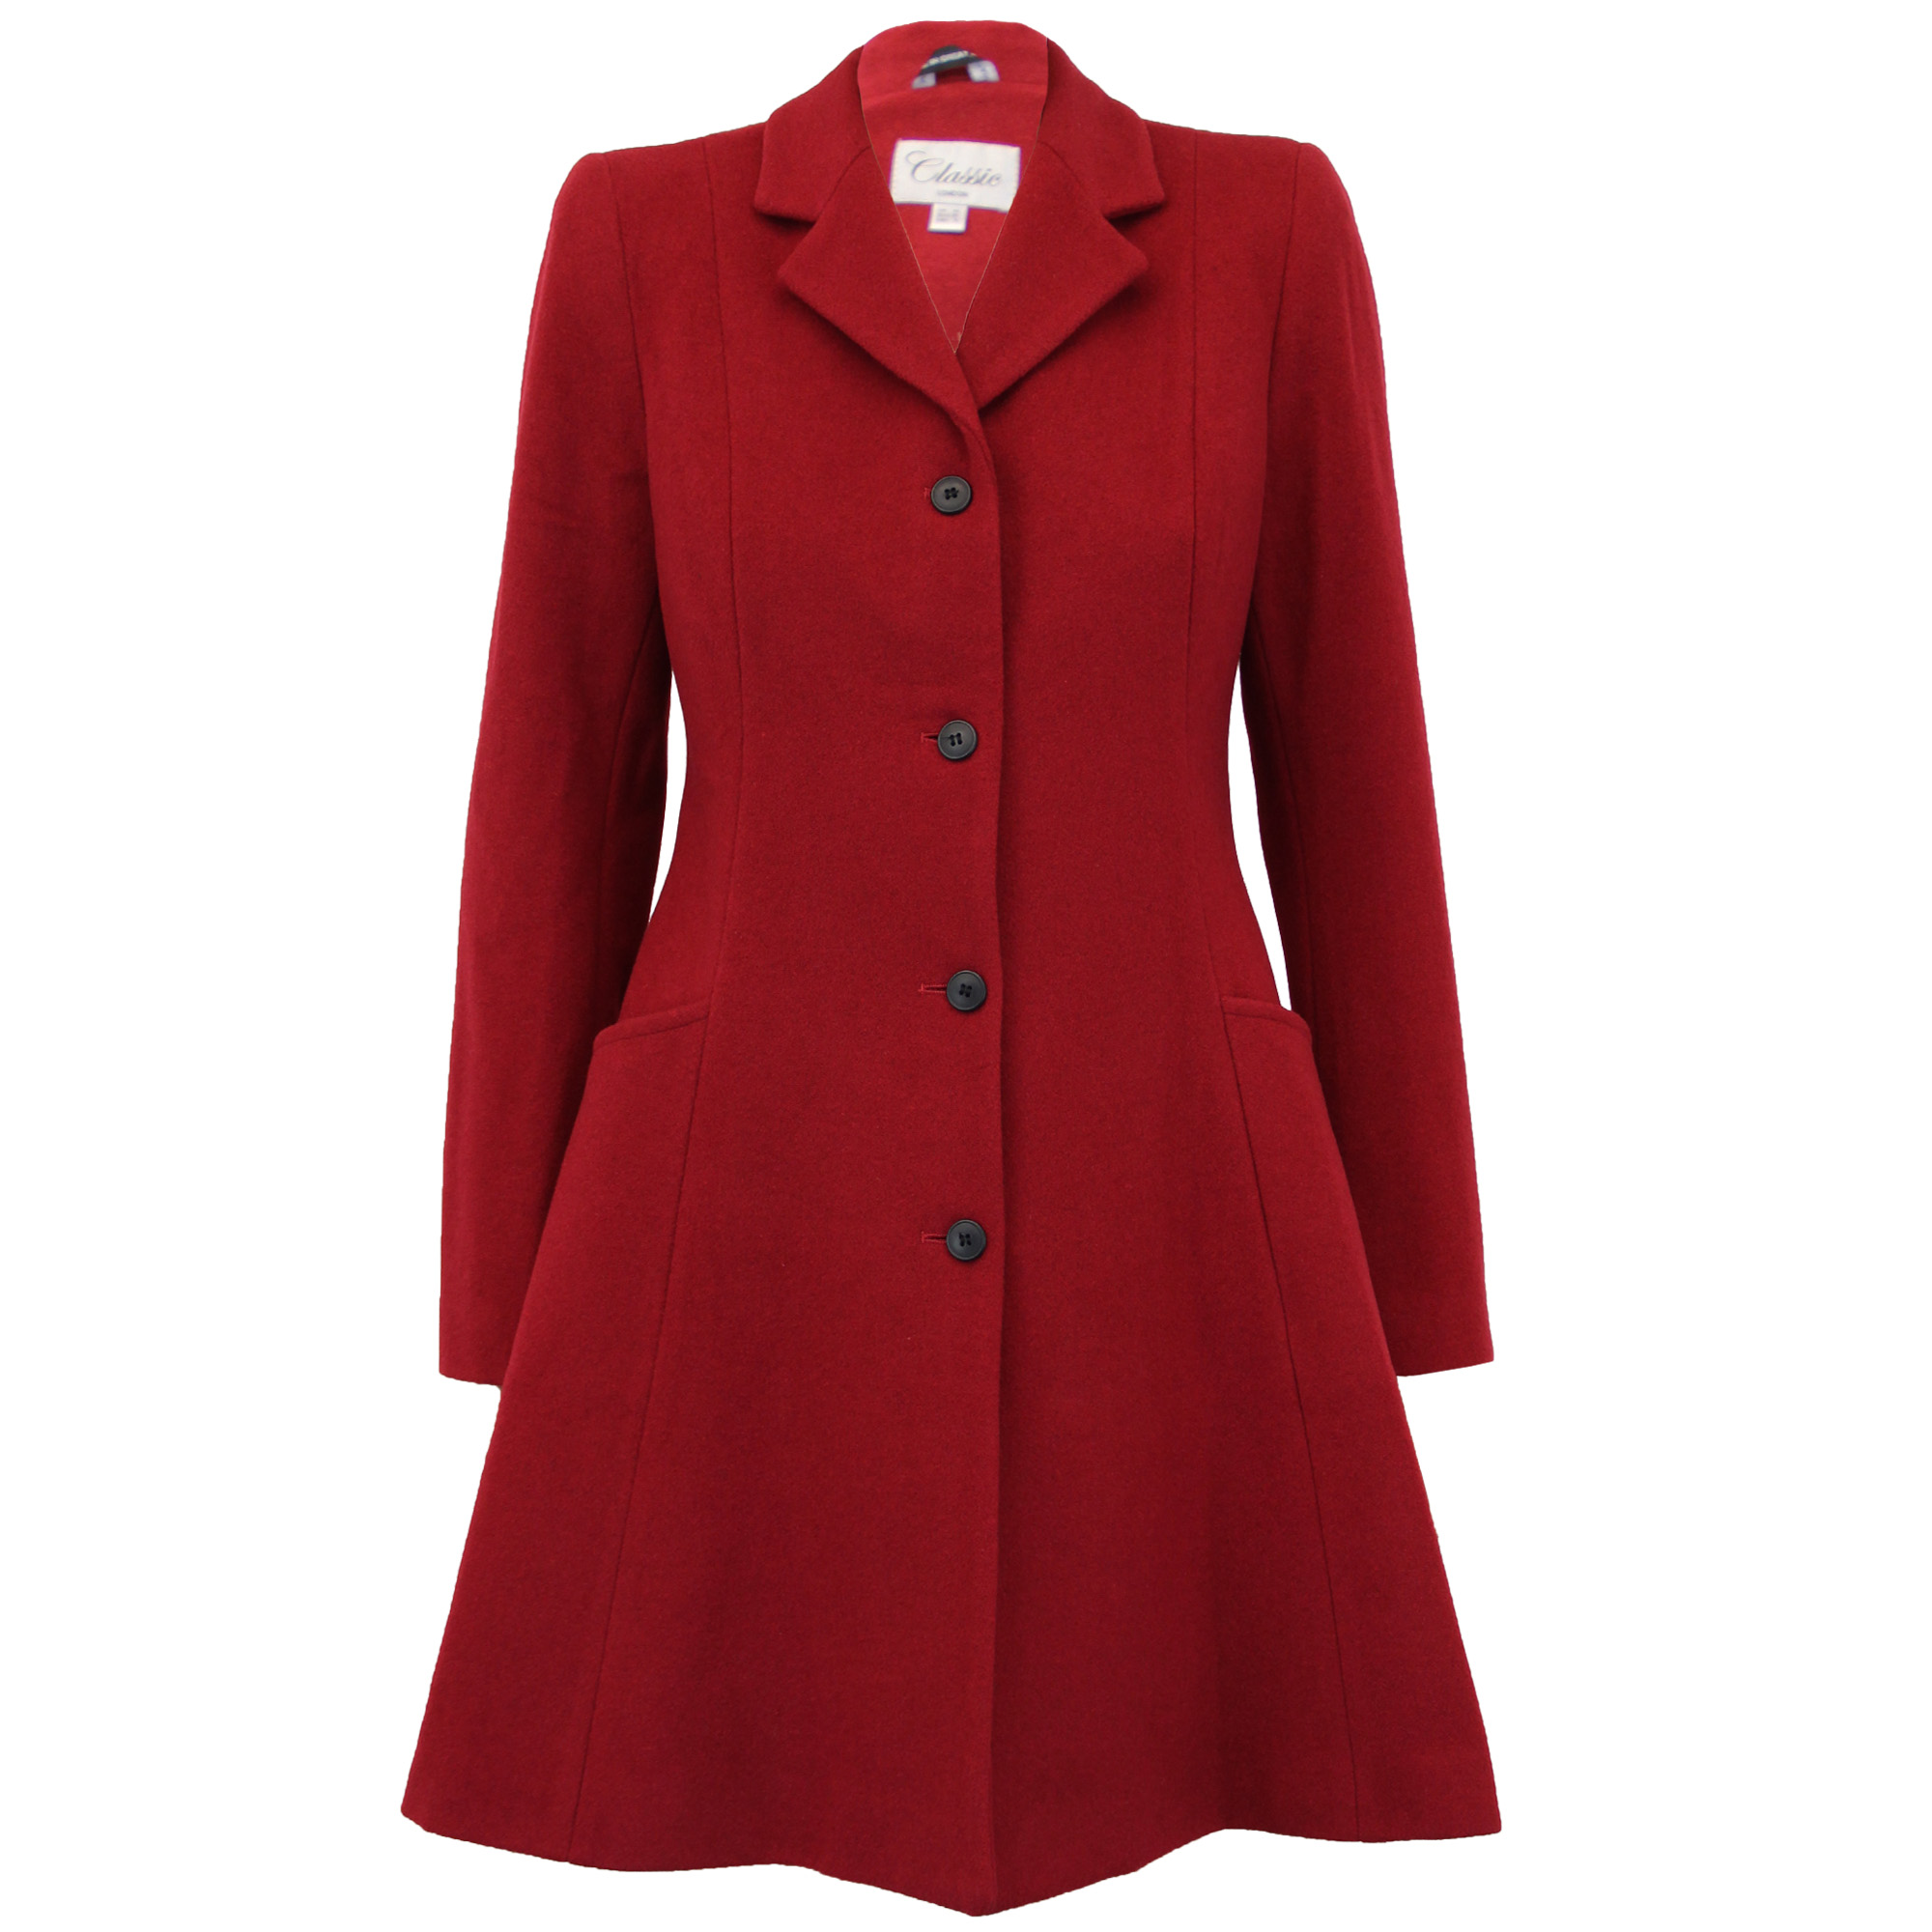 Buy the latest women's winter coats at ajaykumarchejarla.ml Discover cheap women's coats collection with different style and high quality, find your favorite item to show your beauty in this winter.